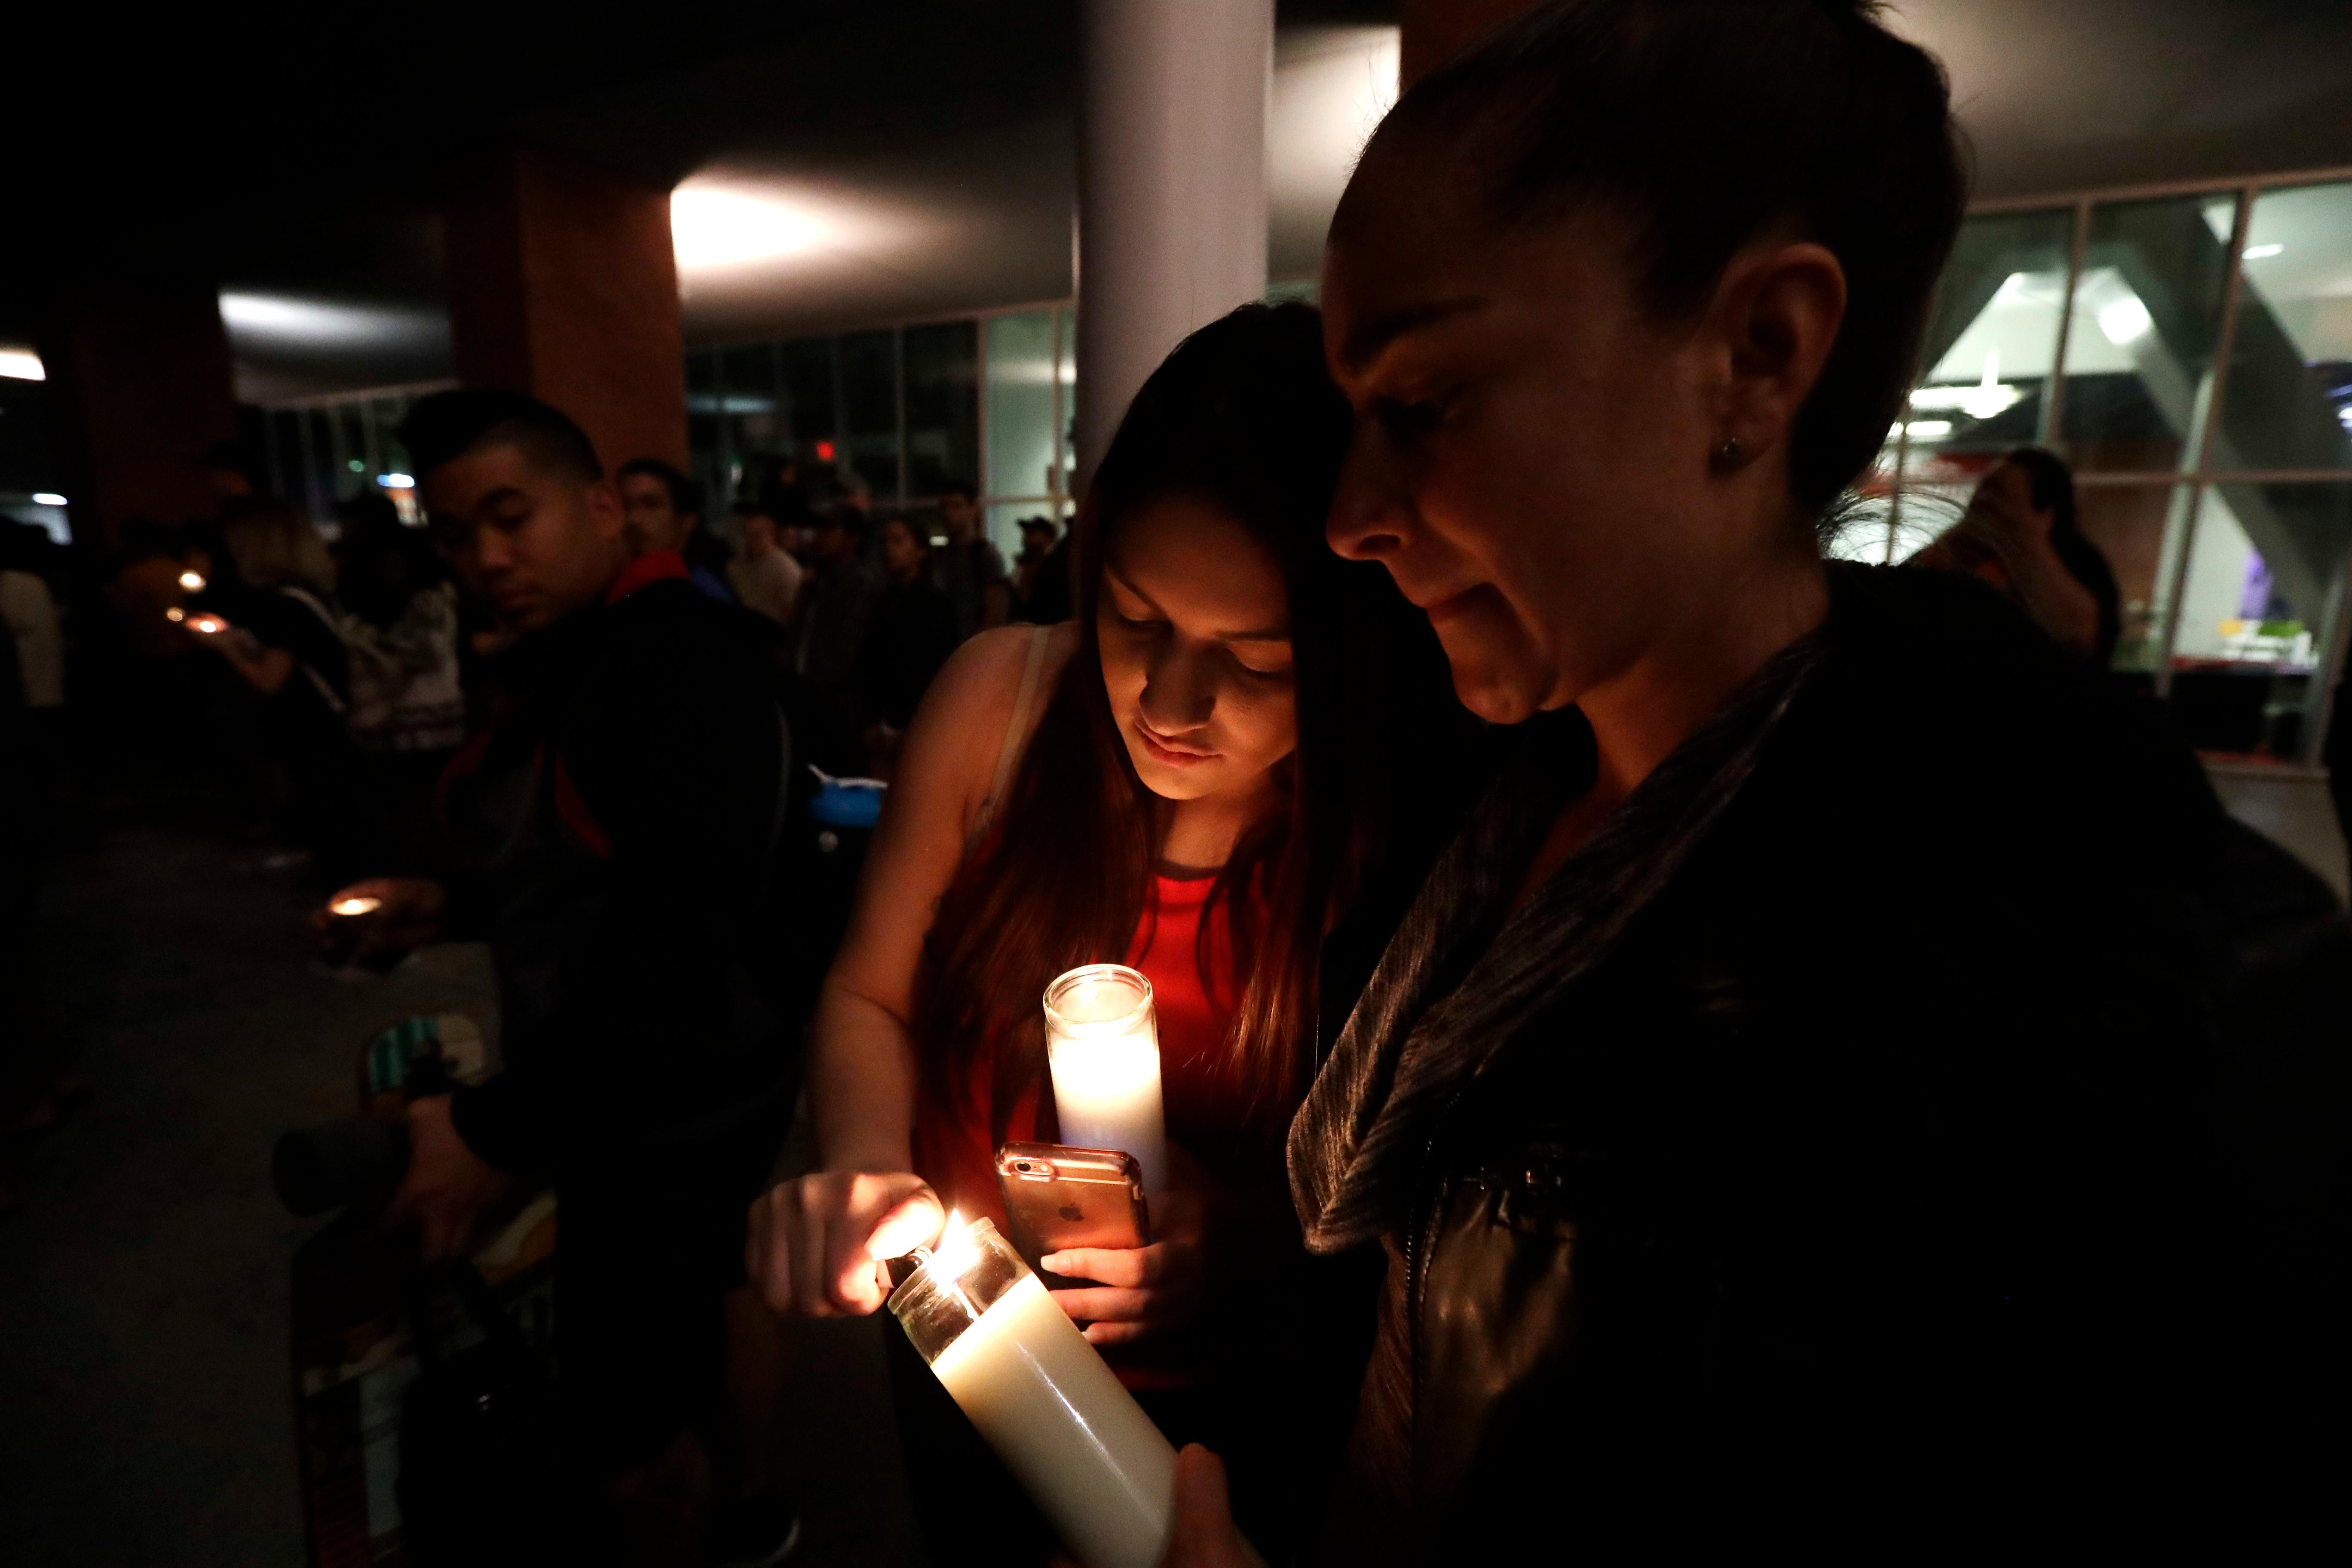 Virginia, right, and Natalie Ramos light candles as students from University of Nevada Las Vegas hold a vigil Monday, Oct. 2, 2017, in Las Vegas. A gunman on the 32nd floor of the Mandalay Bay casino hotel rained automatic weapons fire down on the crowd of over 22,000 at an outdoor country music festival Sunday. (AP Photo/Gregory Bull)